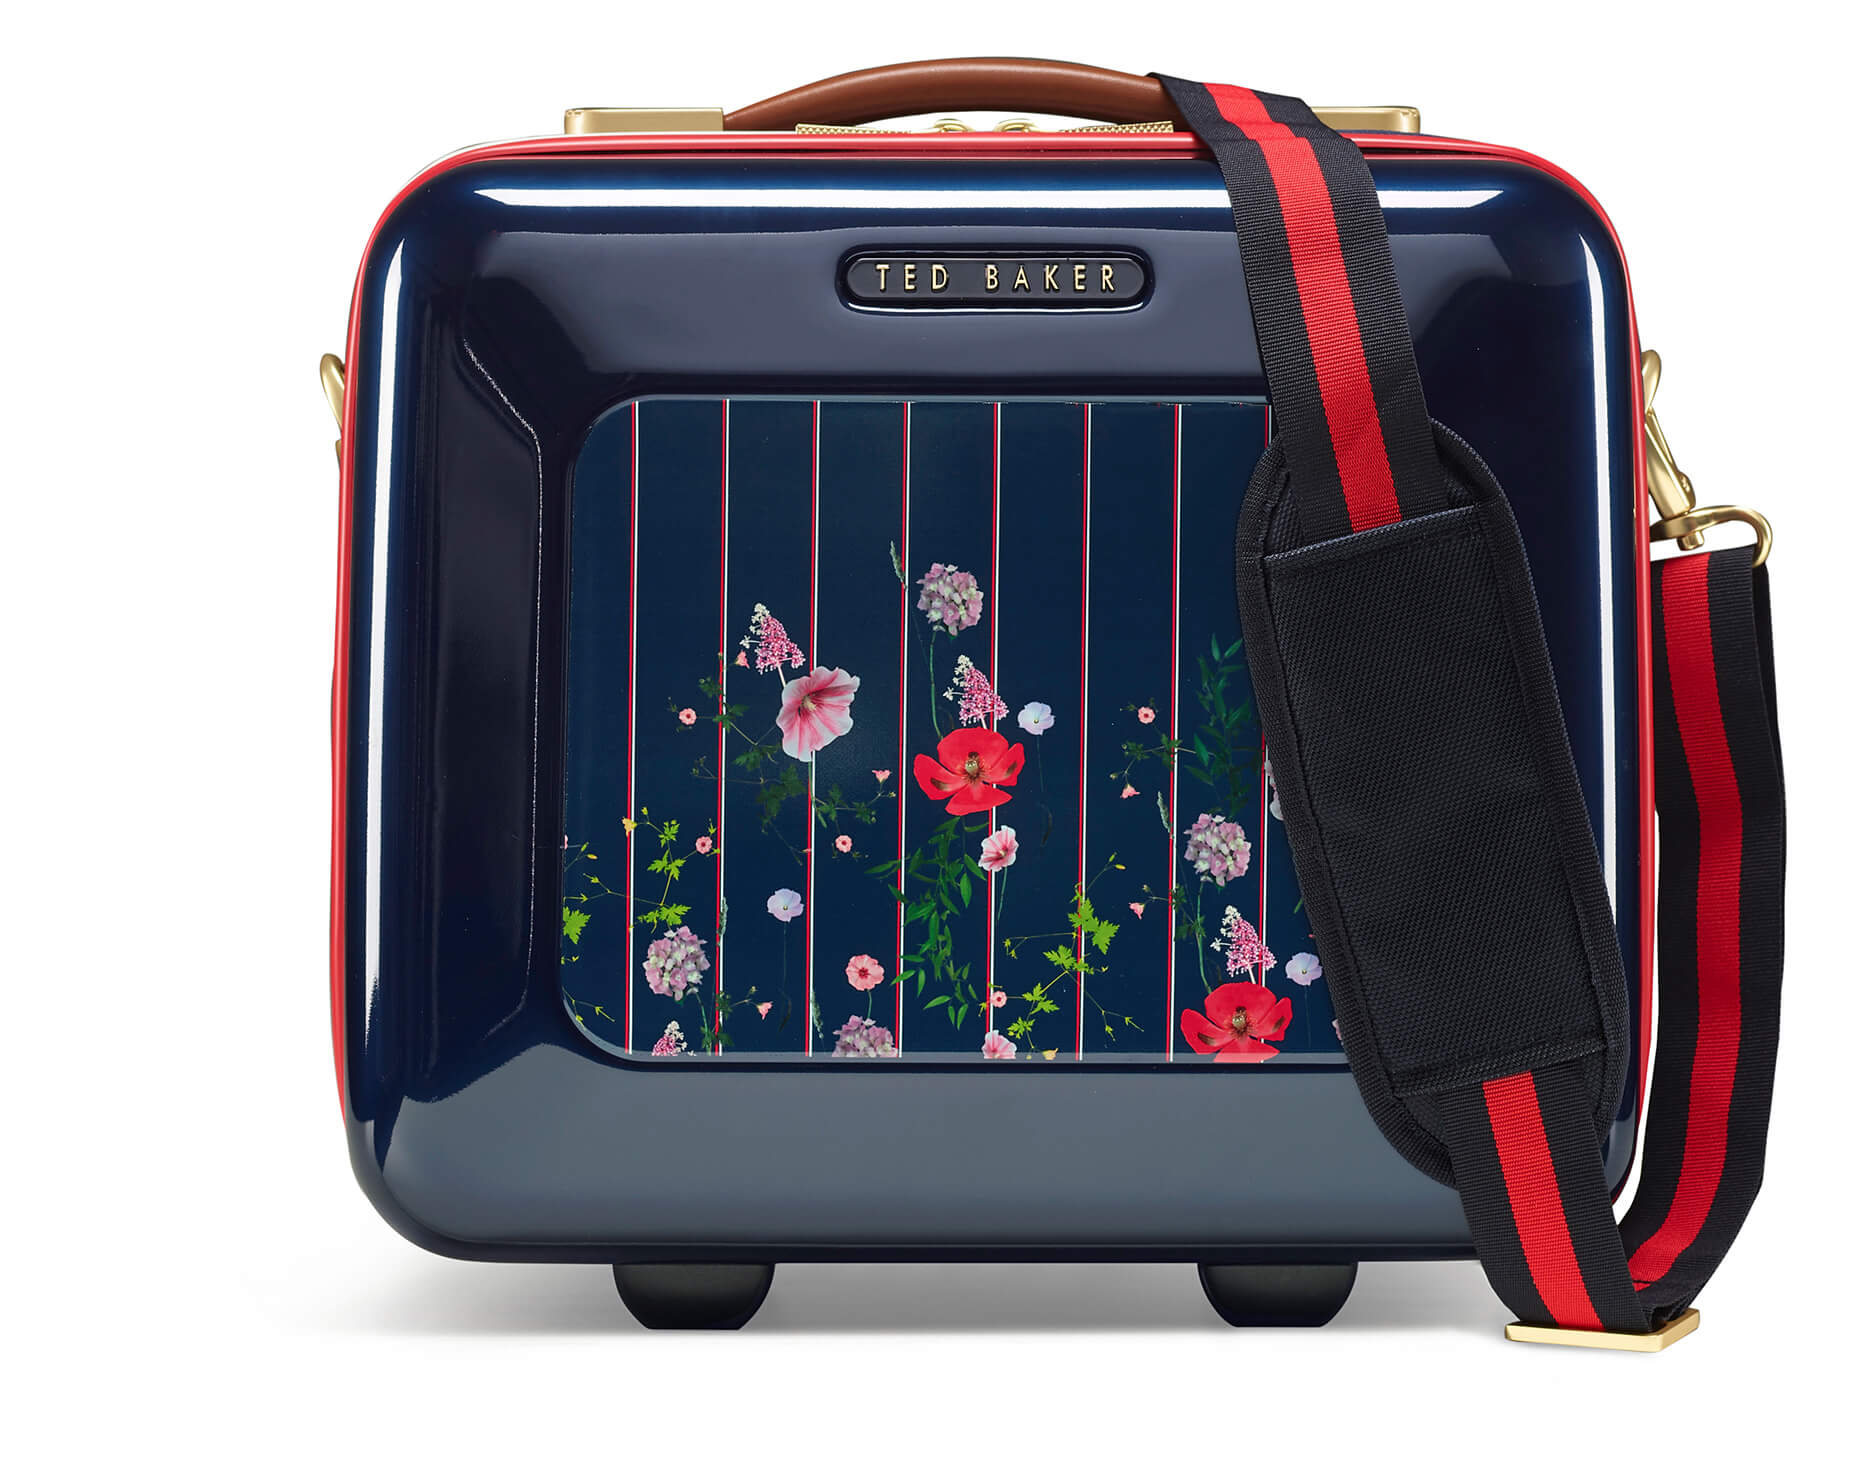 Ted Baker Take Flight Hedgerow Vanity Case